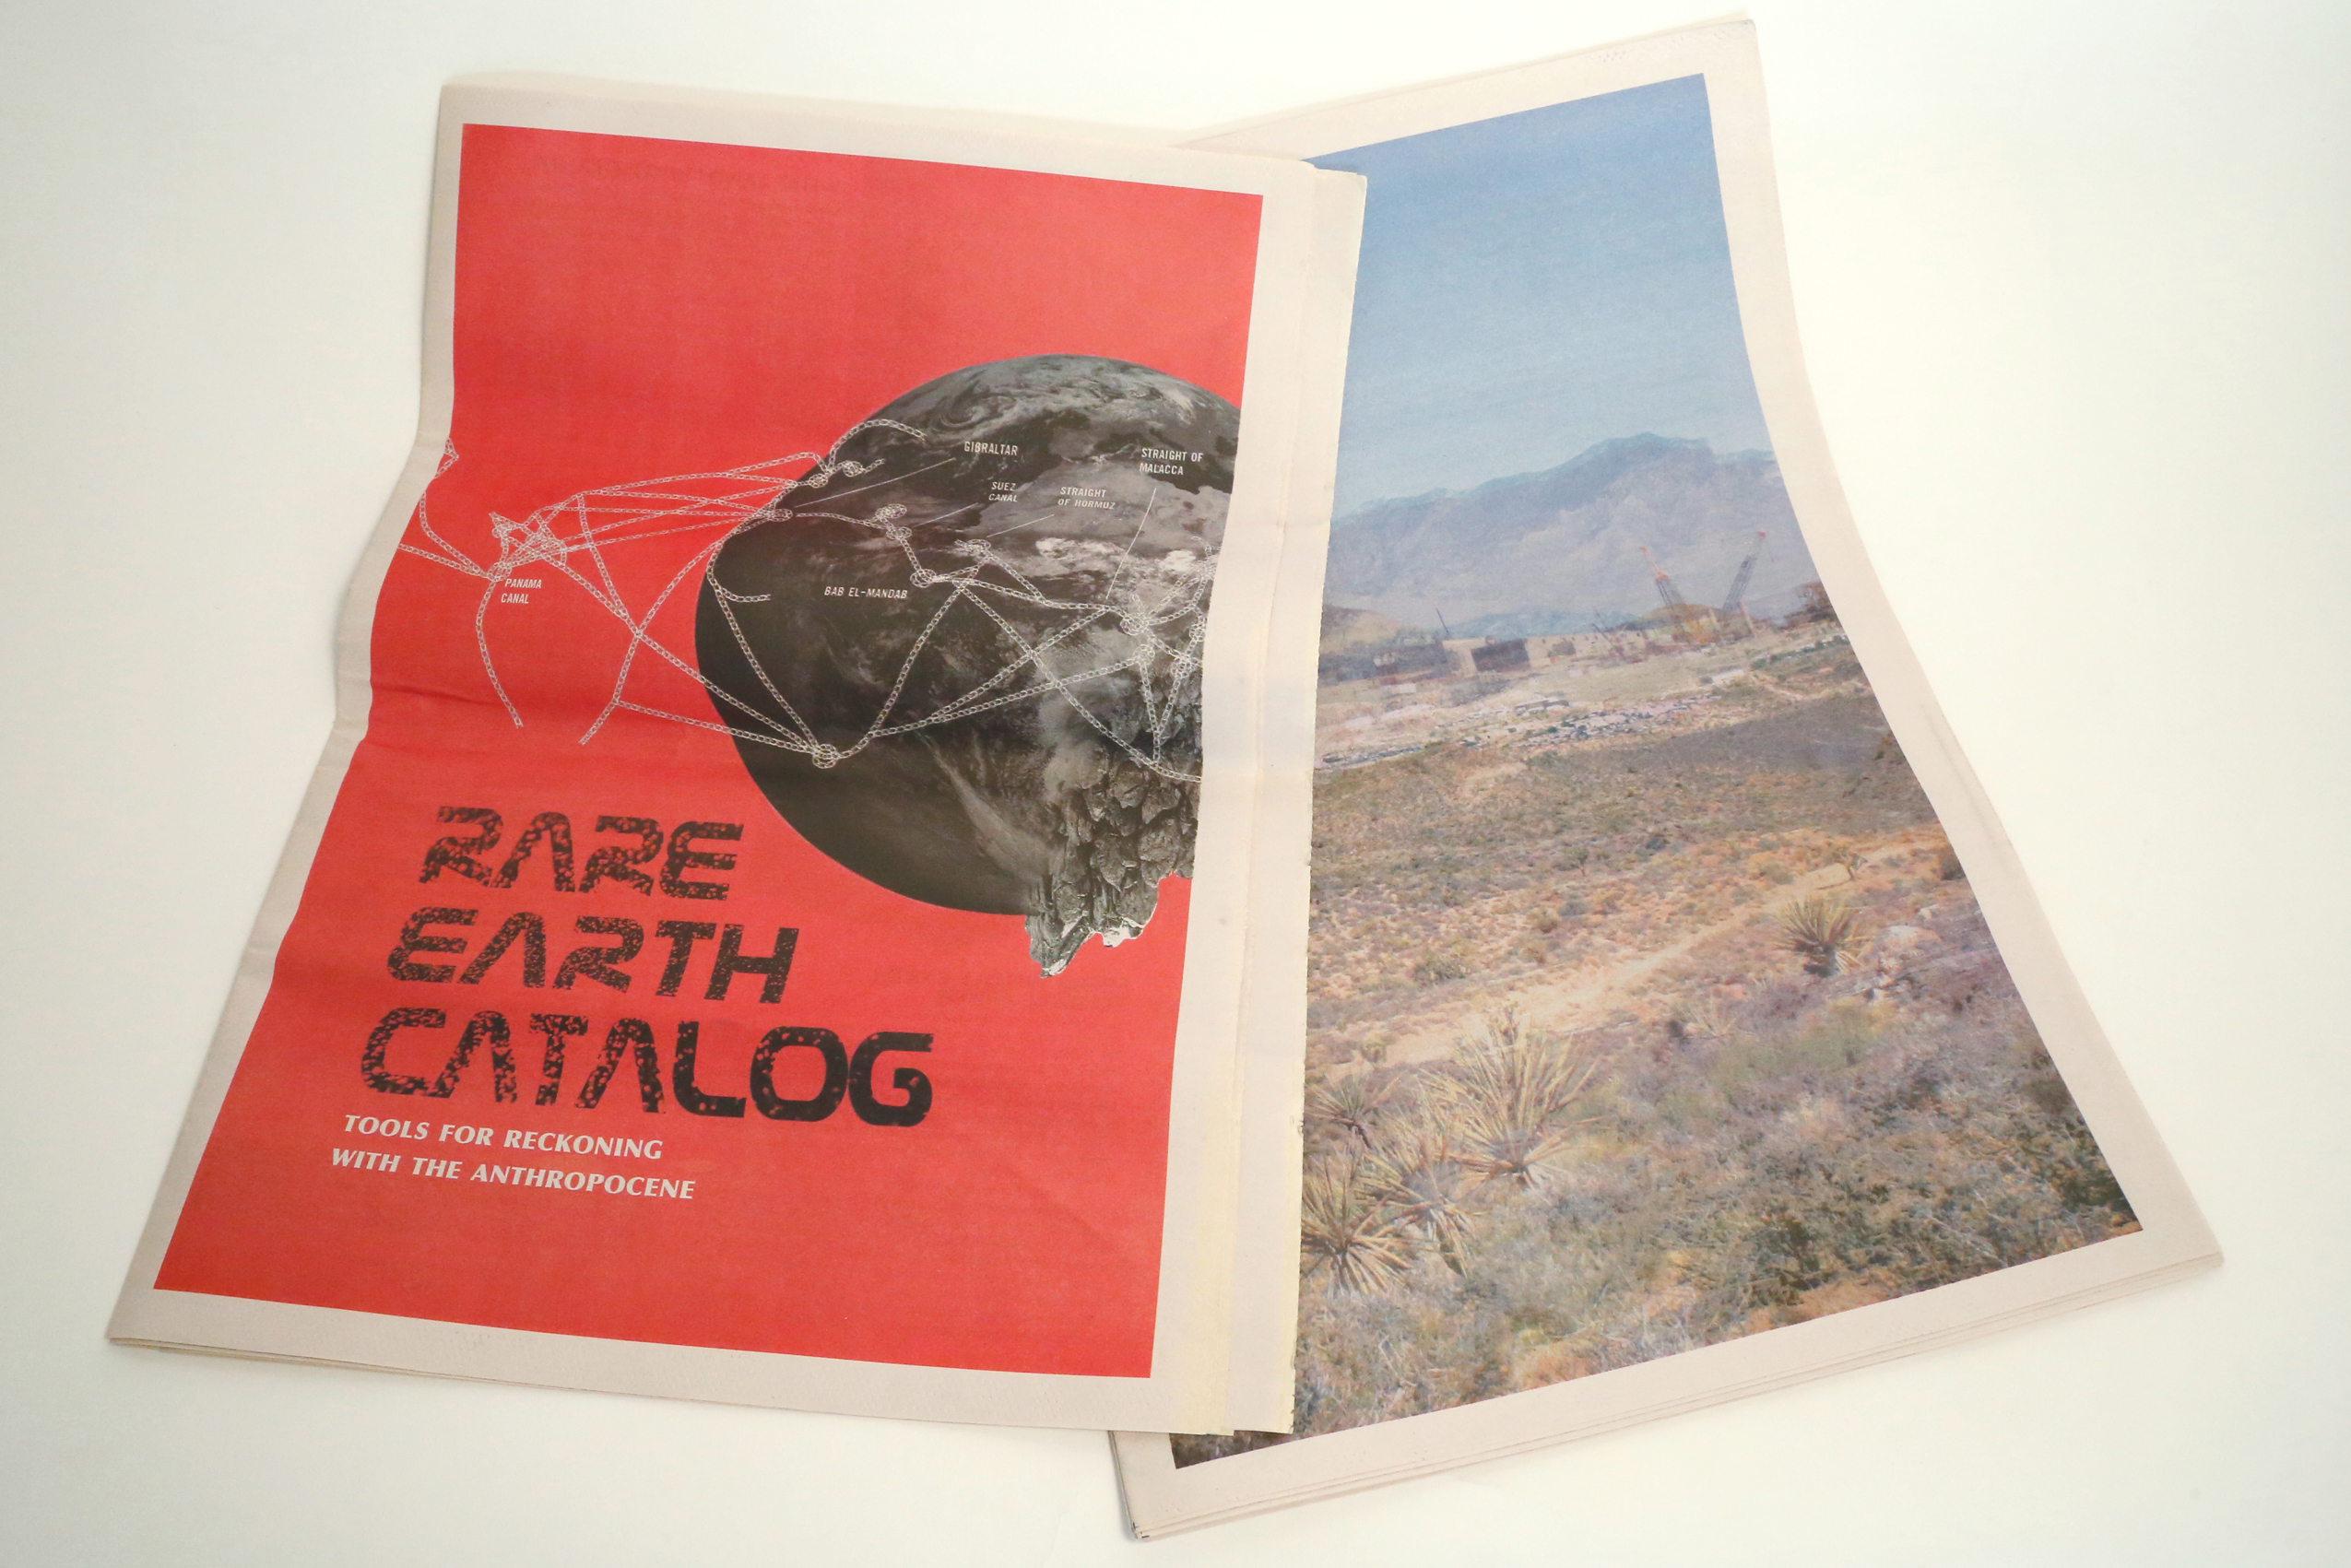 THE RARE EARTH CATALOG 1 & 2